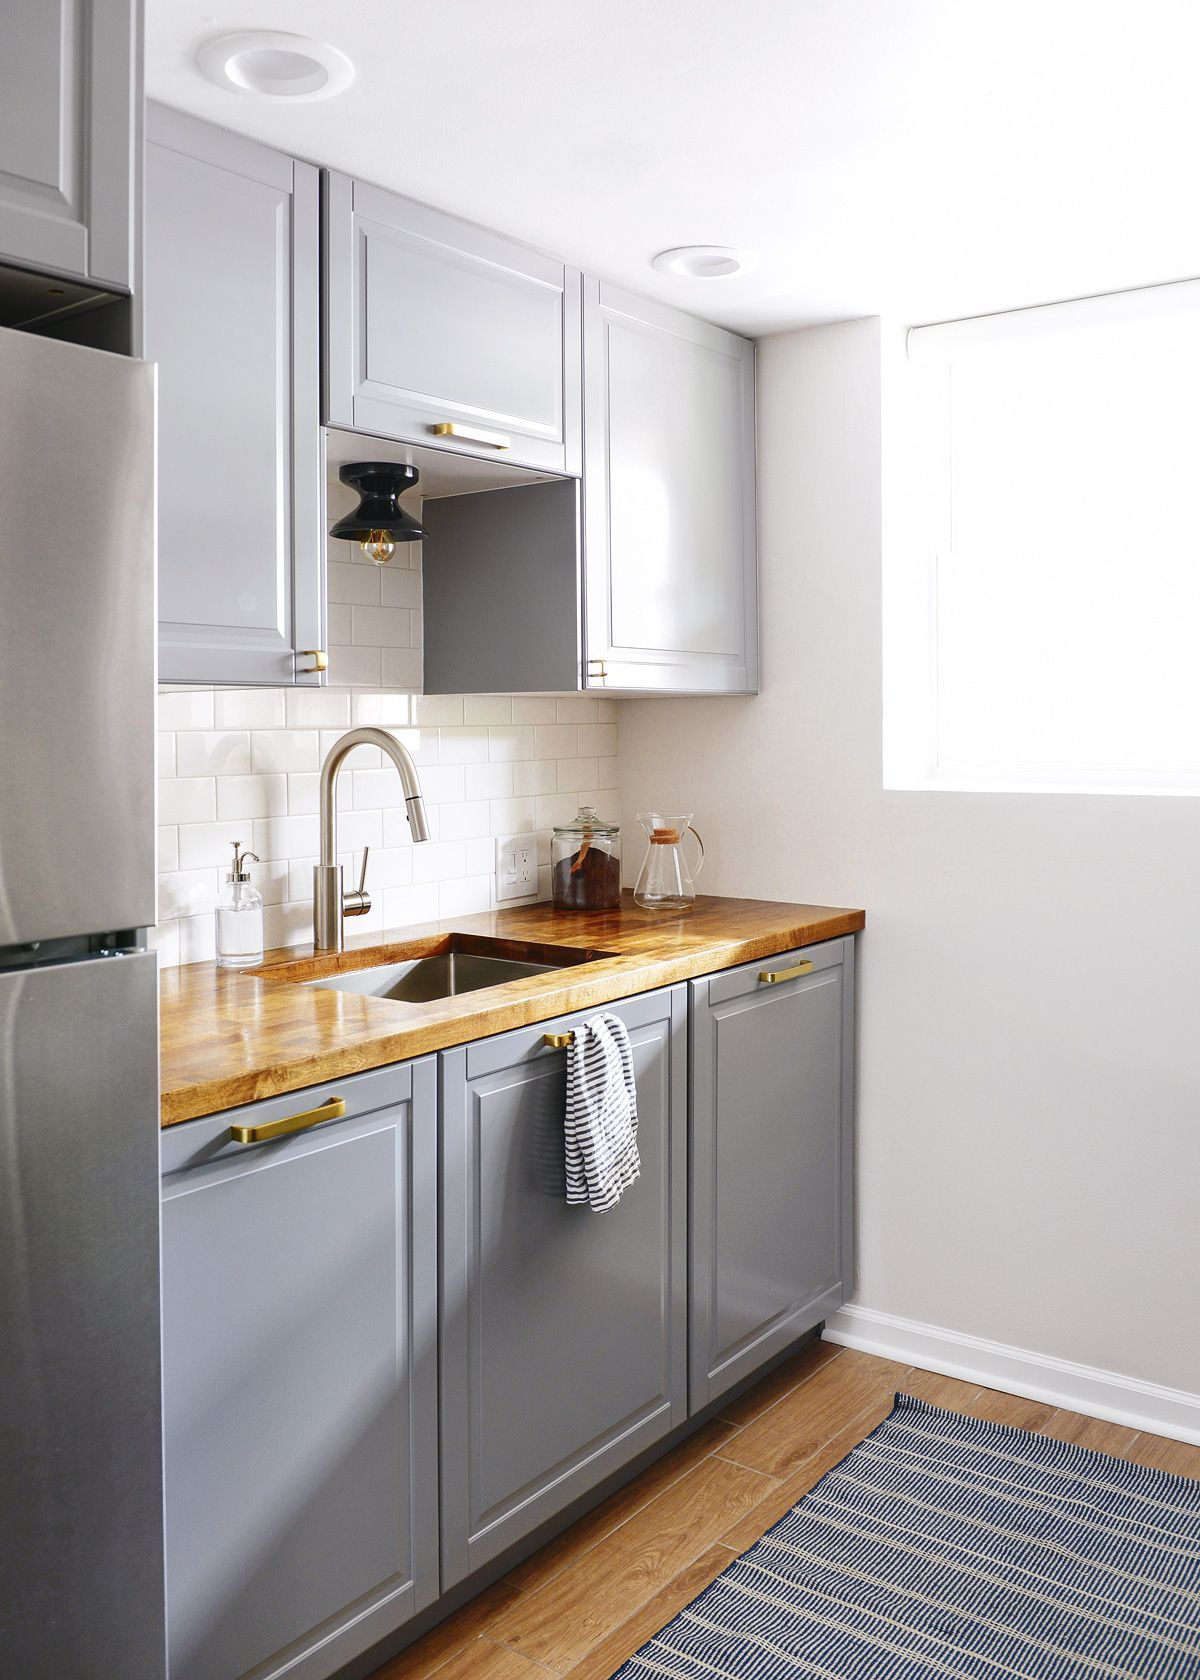 An IKEA galley kitchen by Yellow Brick Home sponsor